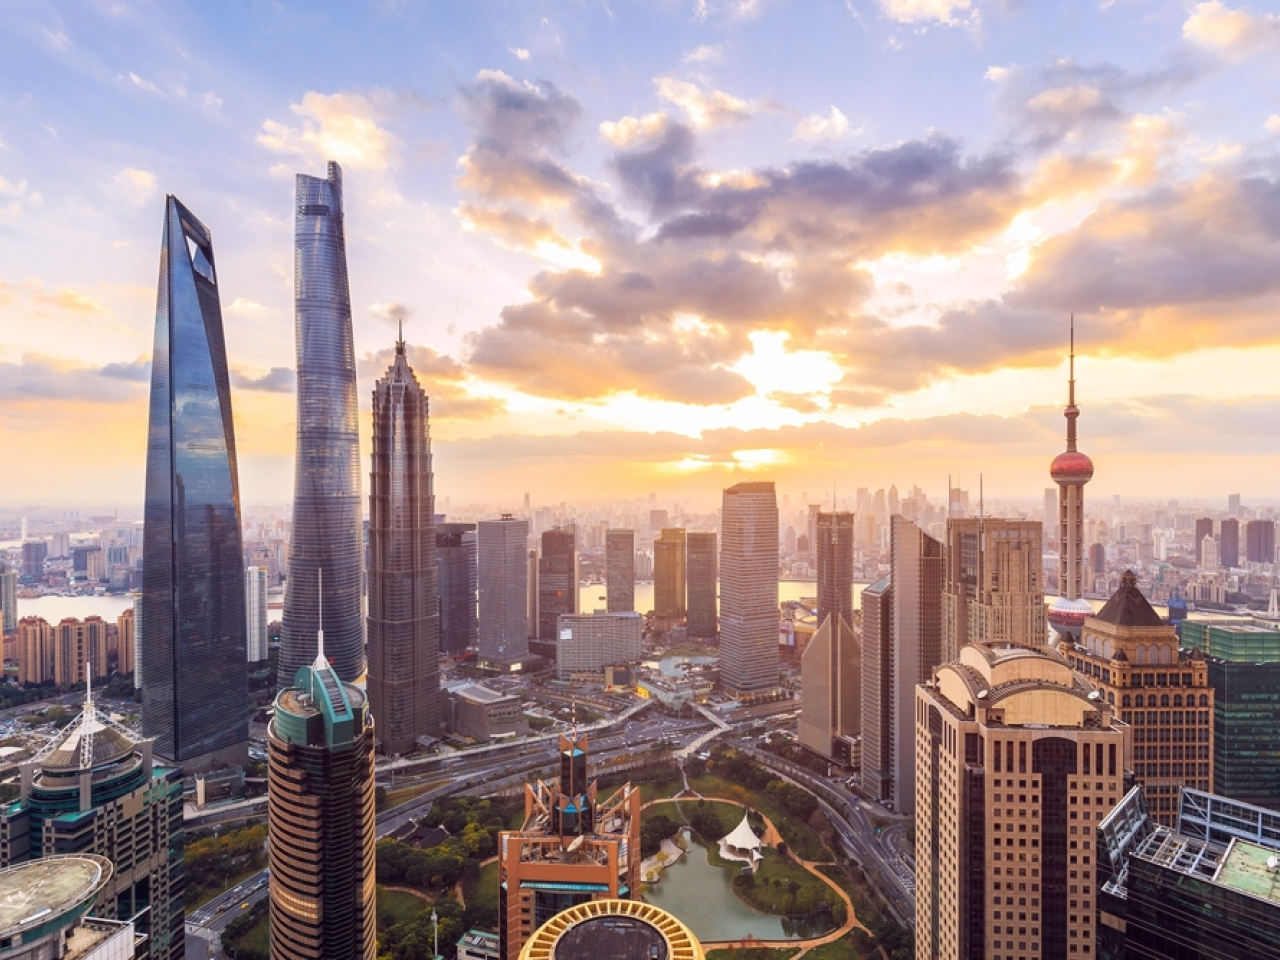 Beijing says China's modernisation features common prosperity, balanced material and cultural progress and a harmonious coexistence between humans and nature. Image: Shutterstock